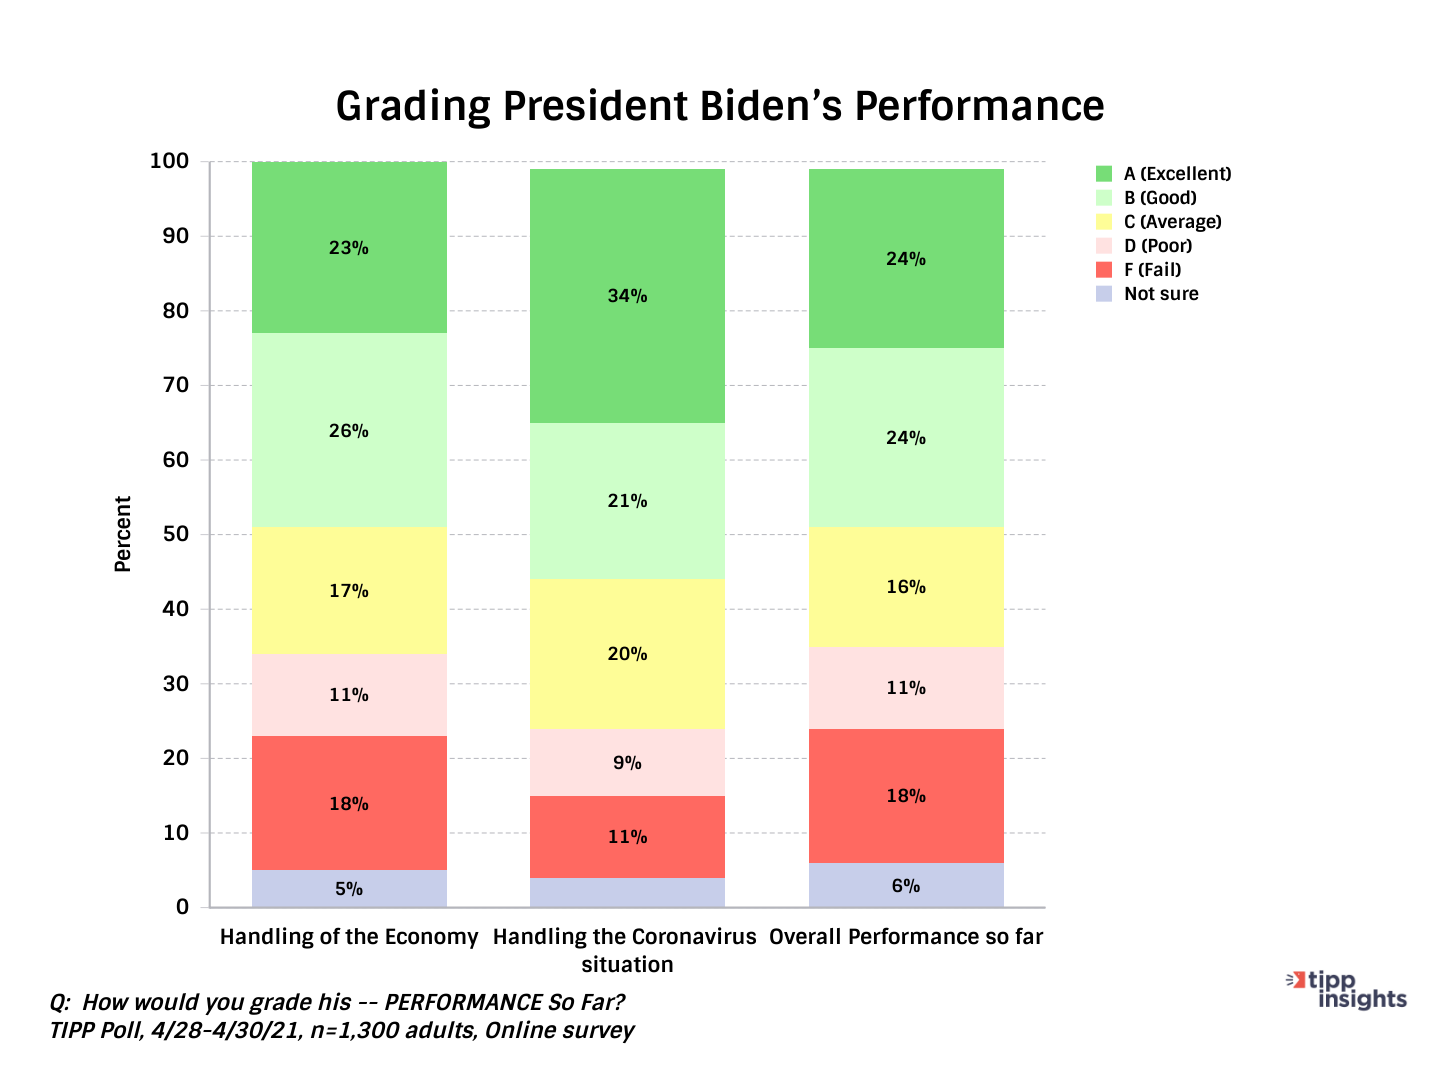 TIPP Poll Results, TIPP Presidential Leadership Index, Grading President Bidens performance for month of May 2021